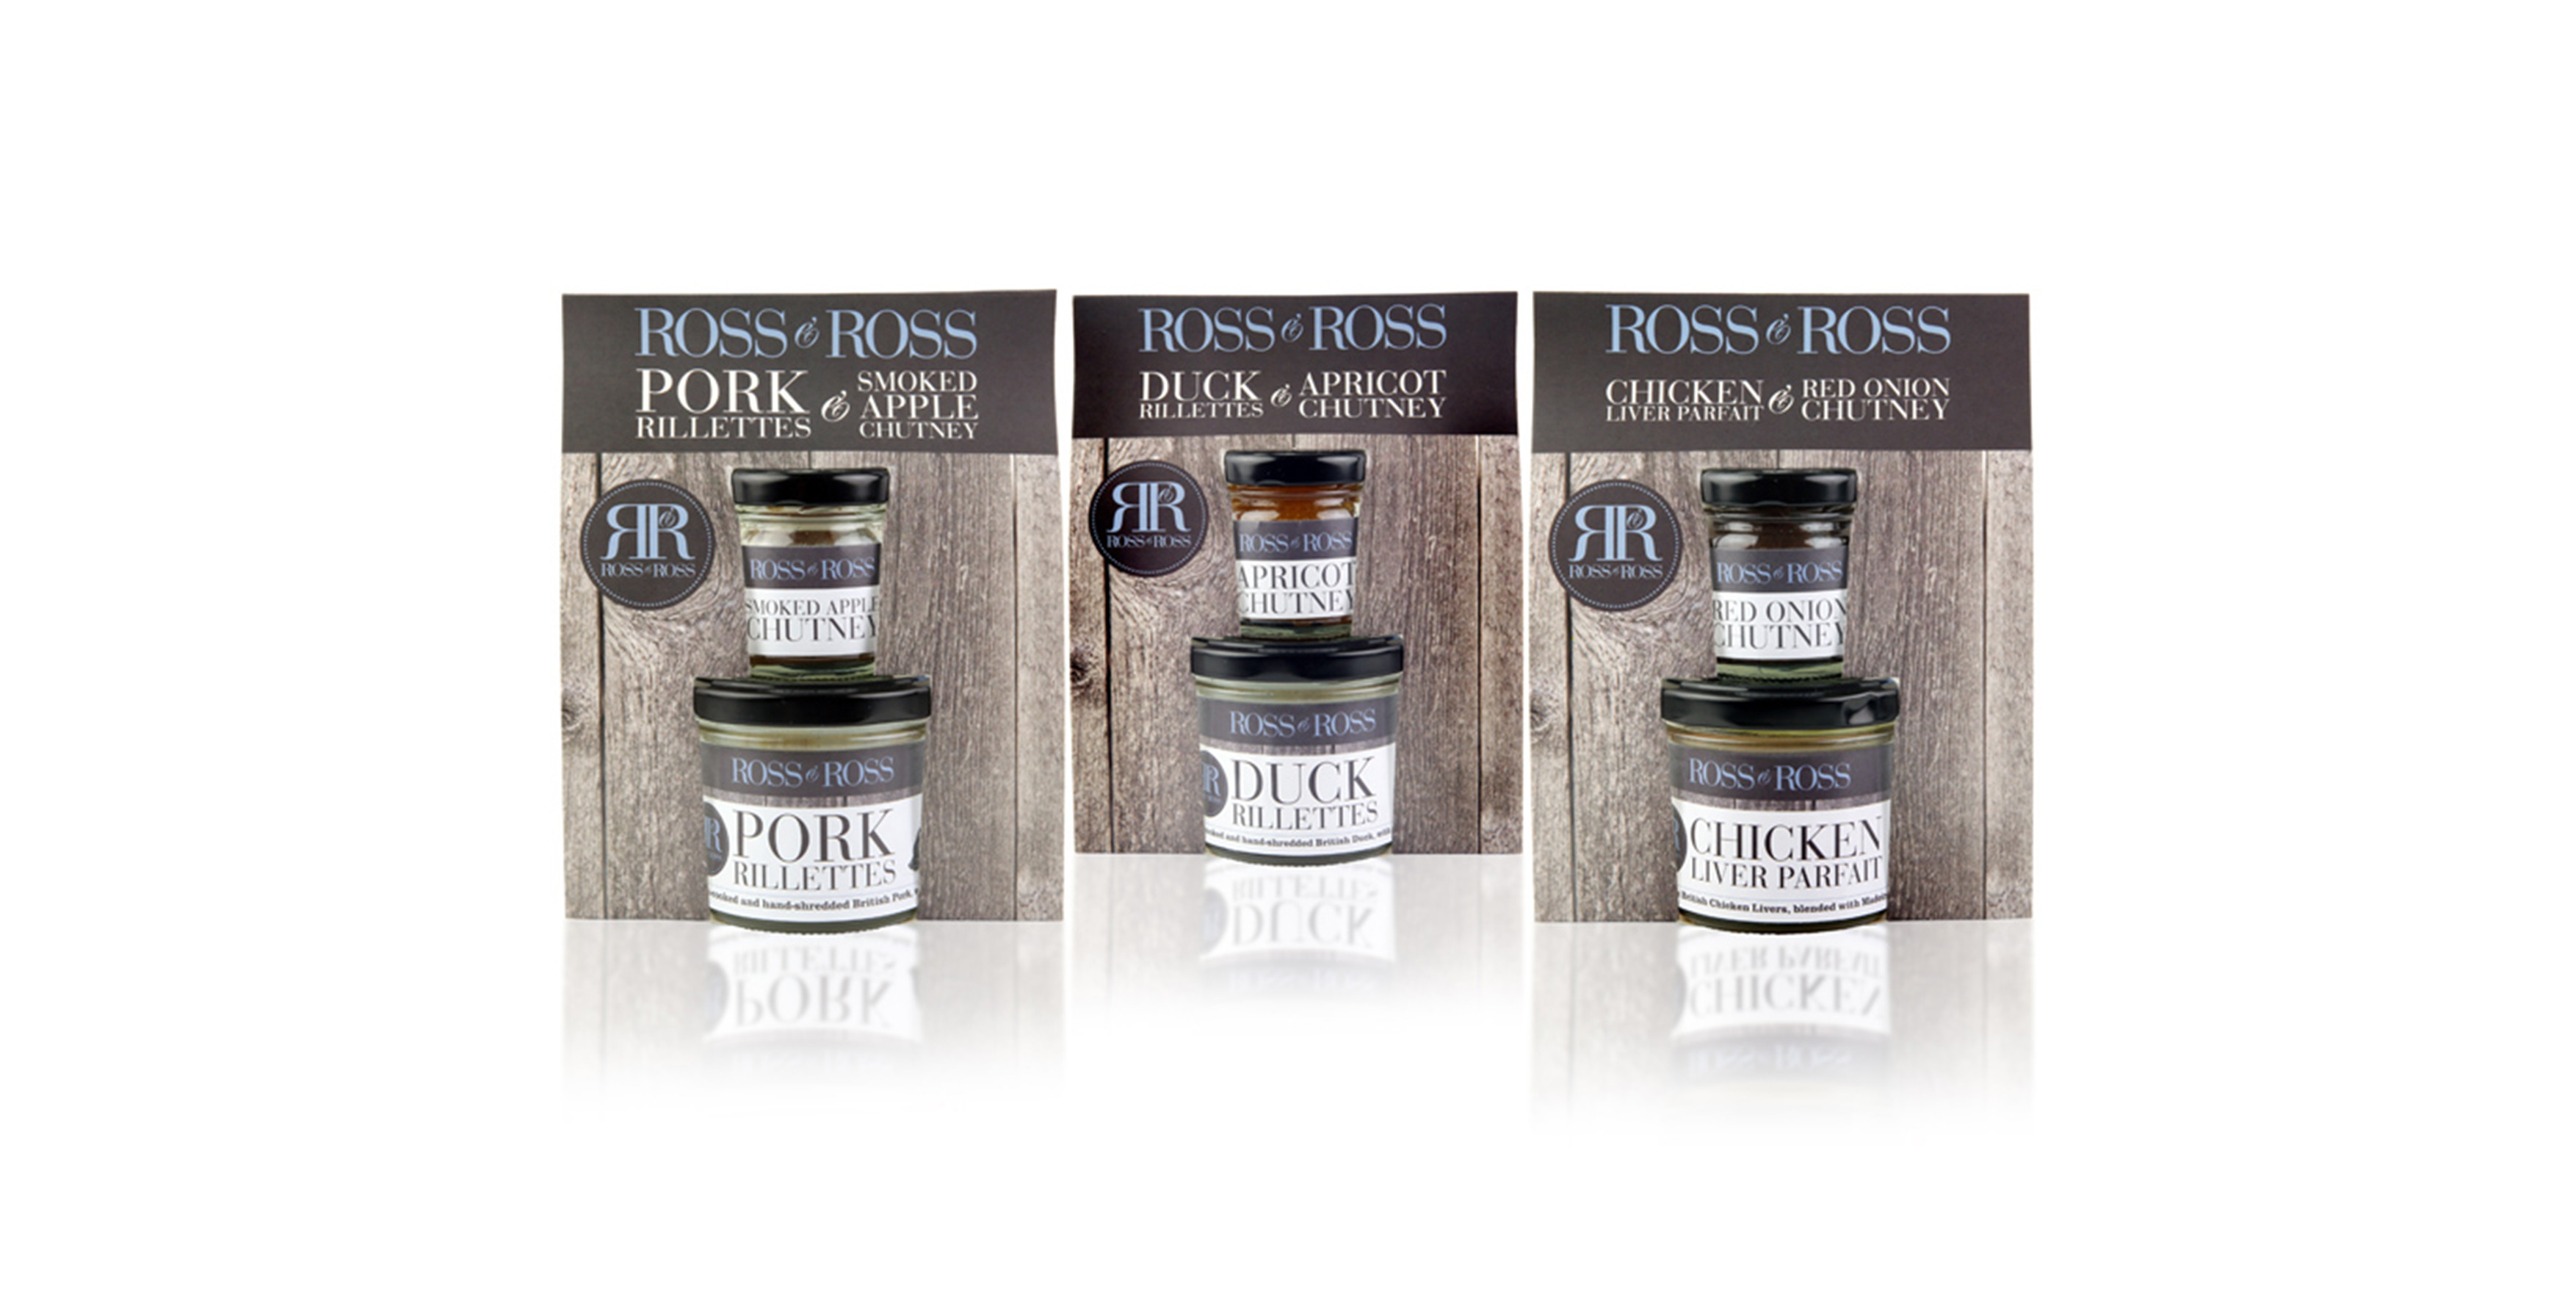 Ross and Ross Food Packaging Design by Toast Food